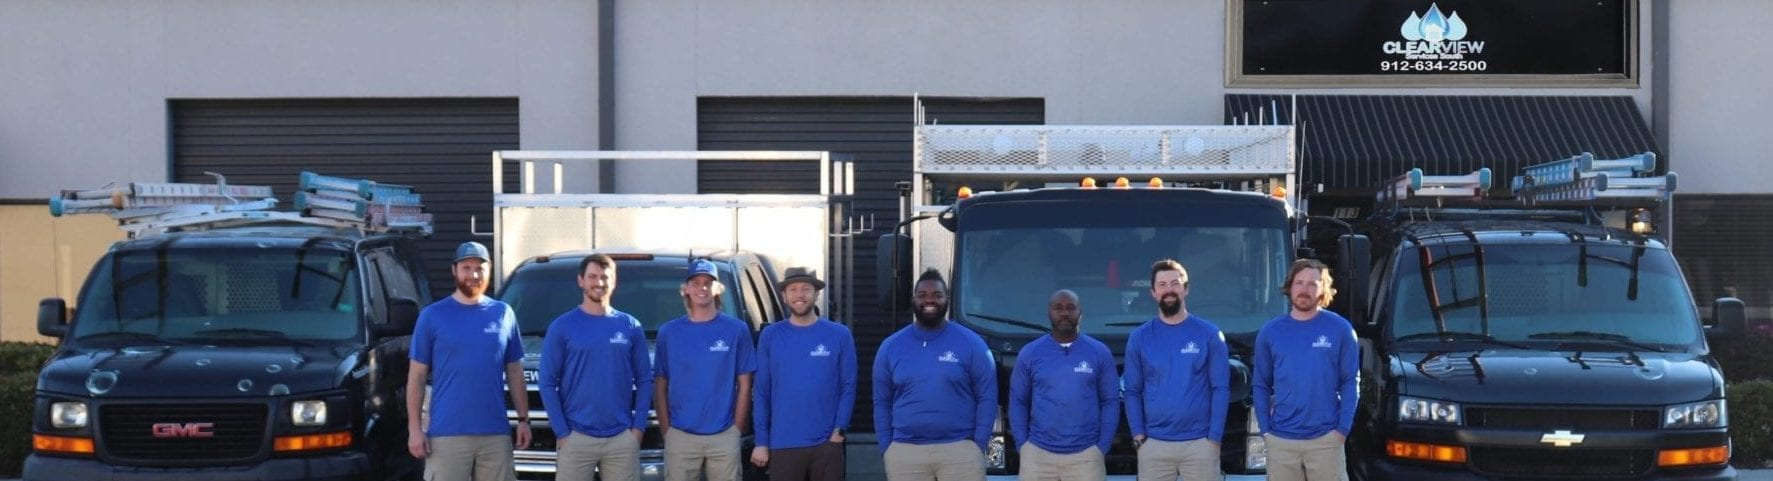 The Clearview Services Team